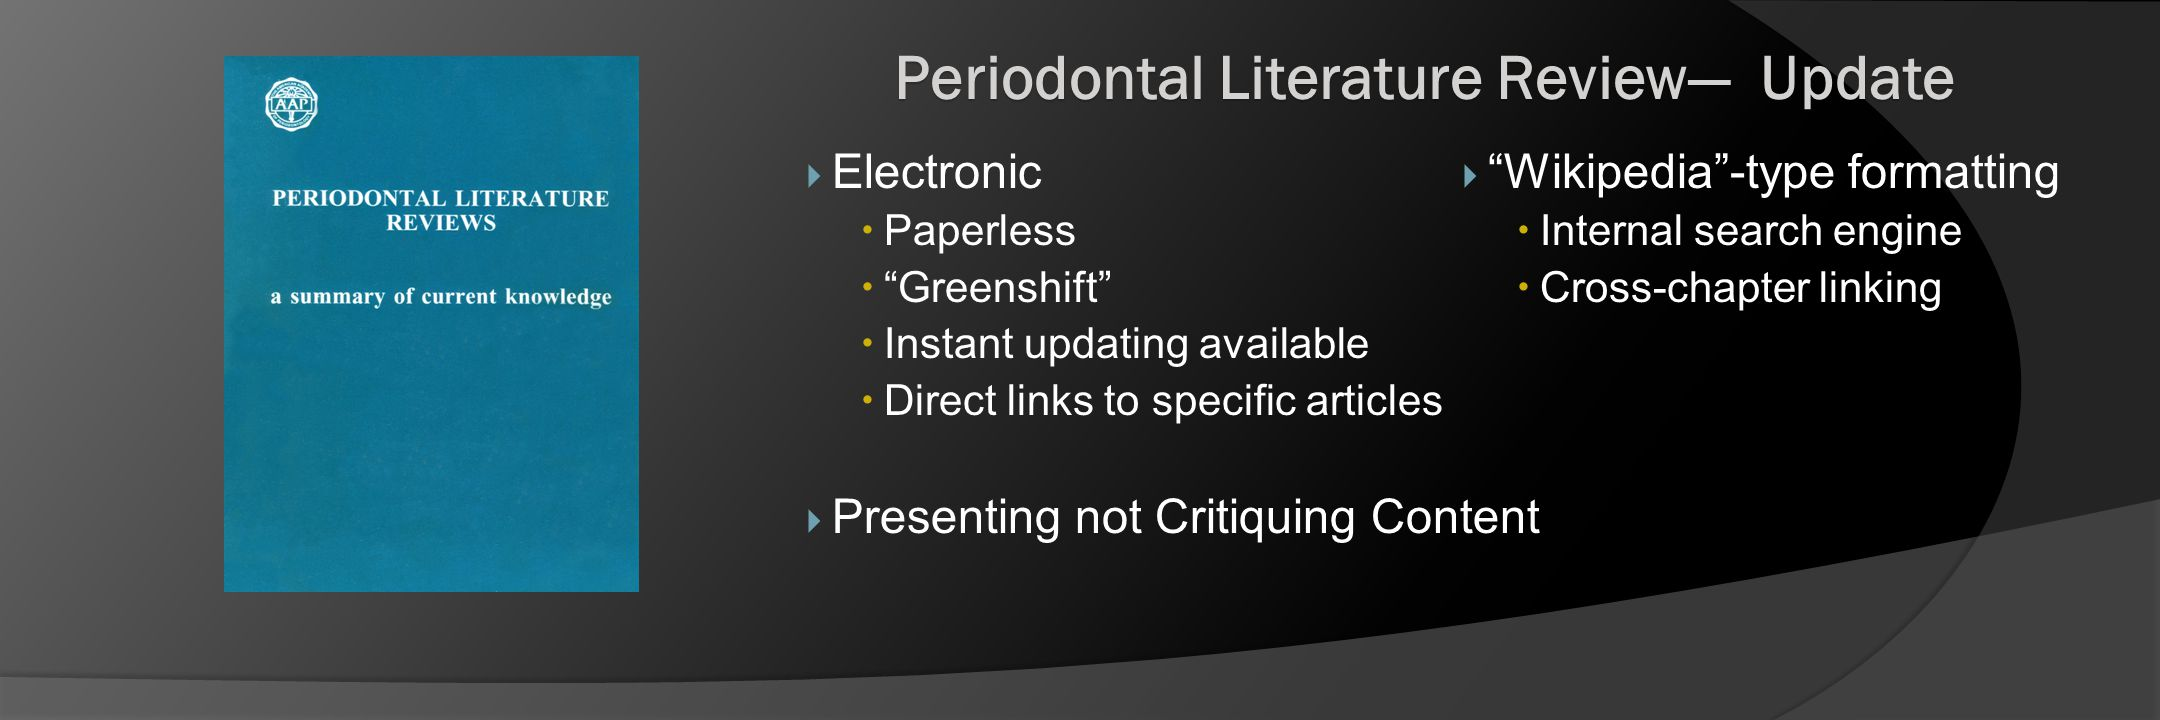 "Periodontal Literature Review— Update  Electronic  Paperless  ""Greenshift""  Instant updating available  Direct links to specific articles  Prese"